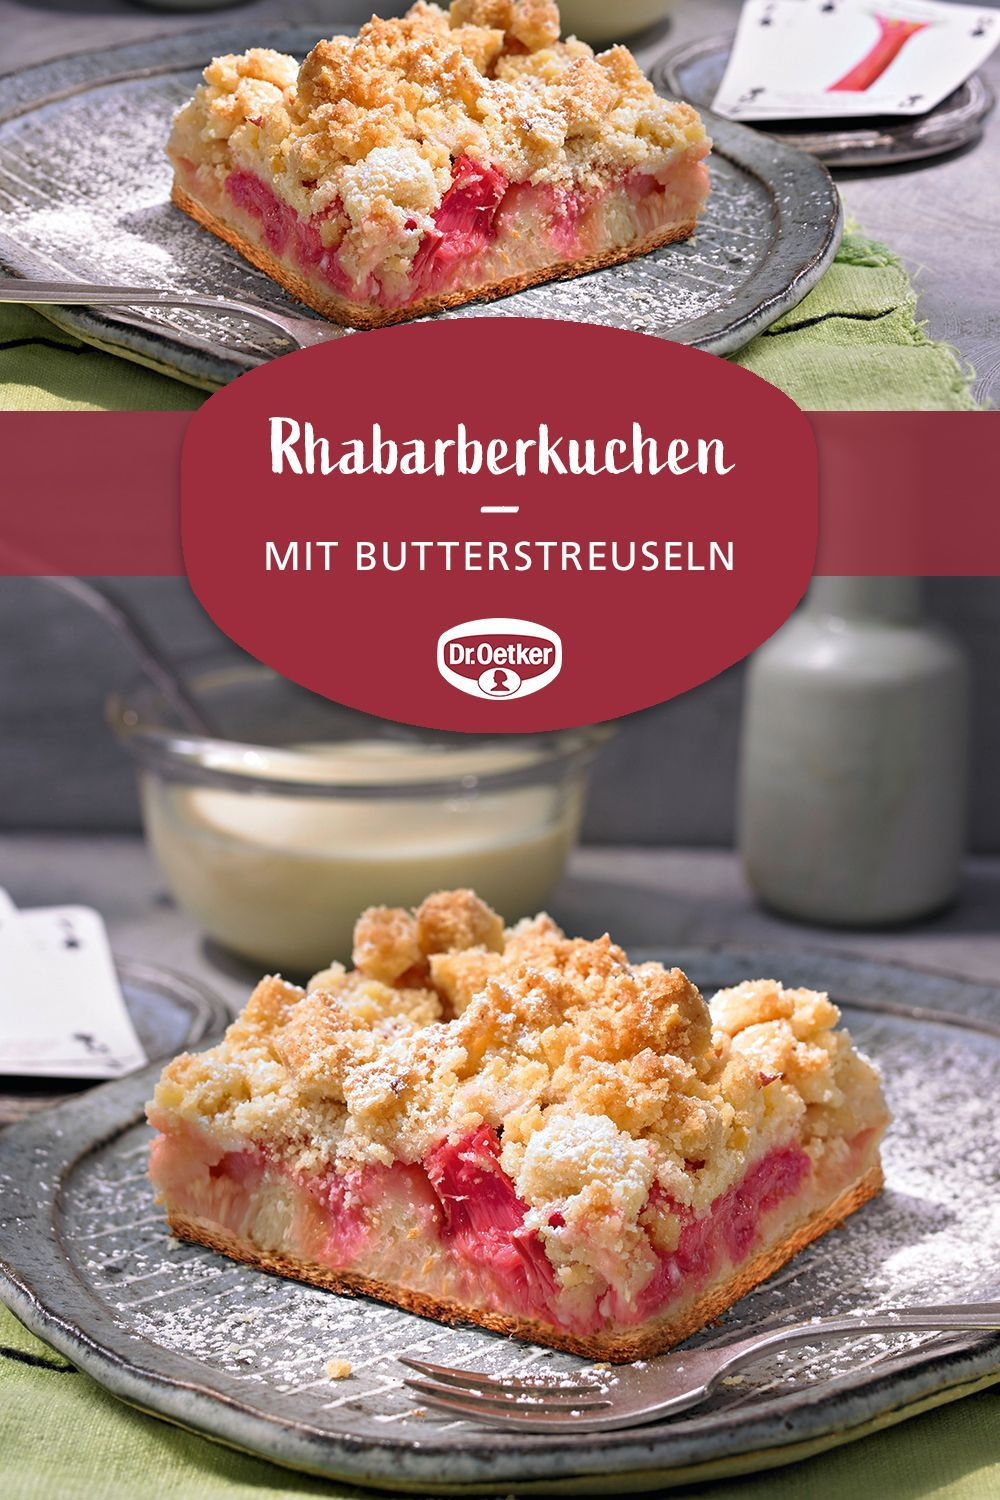 Rhabarberkuchen mit Butterstreuseln: Feiner Hefe-Blechkuchen mit einem Belag aus Puddingcreme, Rhabarberstücken und Streuseln #kaffeetafel #teatime #selbstgebacken    Undoubtedly, one of the tools we use the most in the oven kitchen. It saves us time while saving us from bad odors in our kitchens. Another benefit is that baking in the oven saves our recipes from excess oil as a culinary technique.    Well, do we use the oven correctly, which not onl... #Butterstreuseln #mit #Rhabarberkuchen